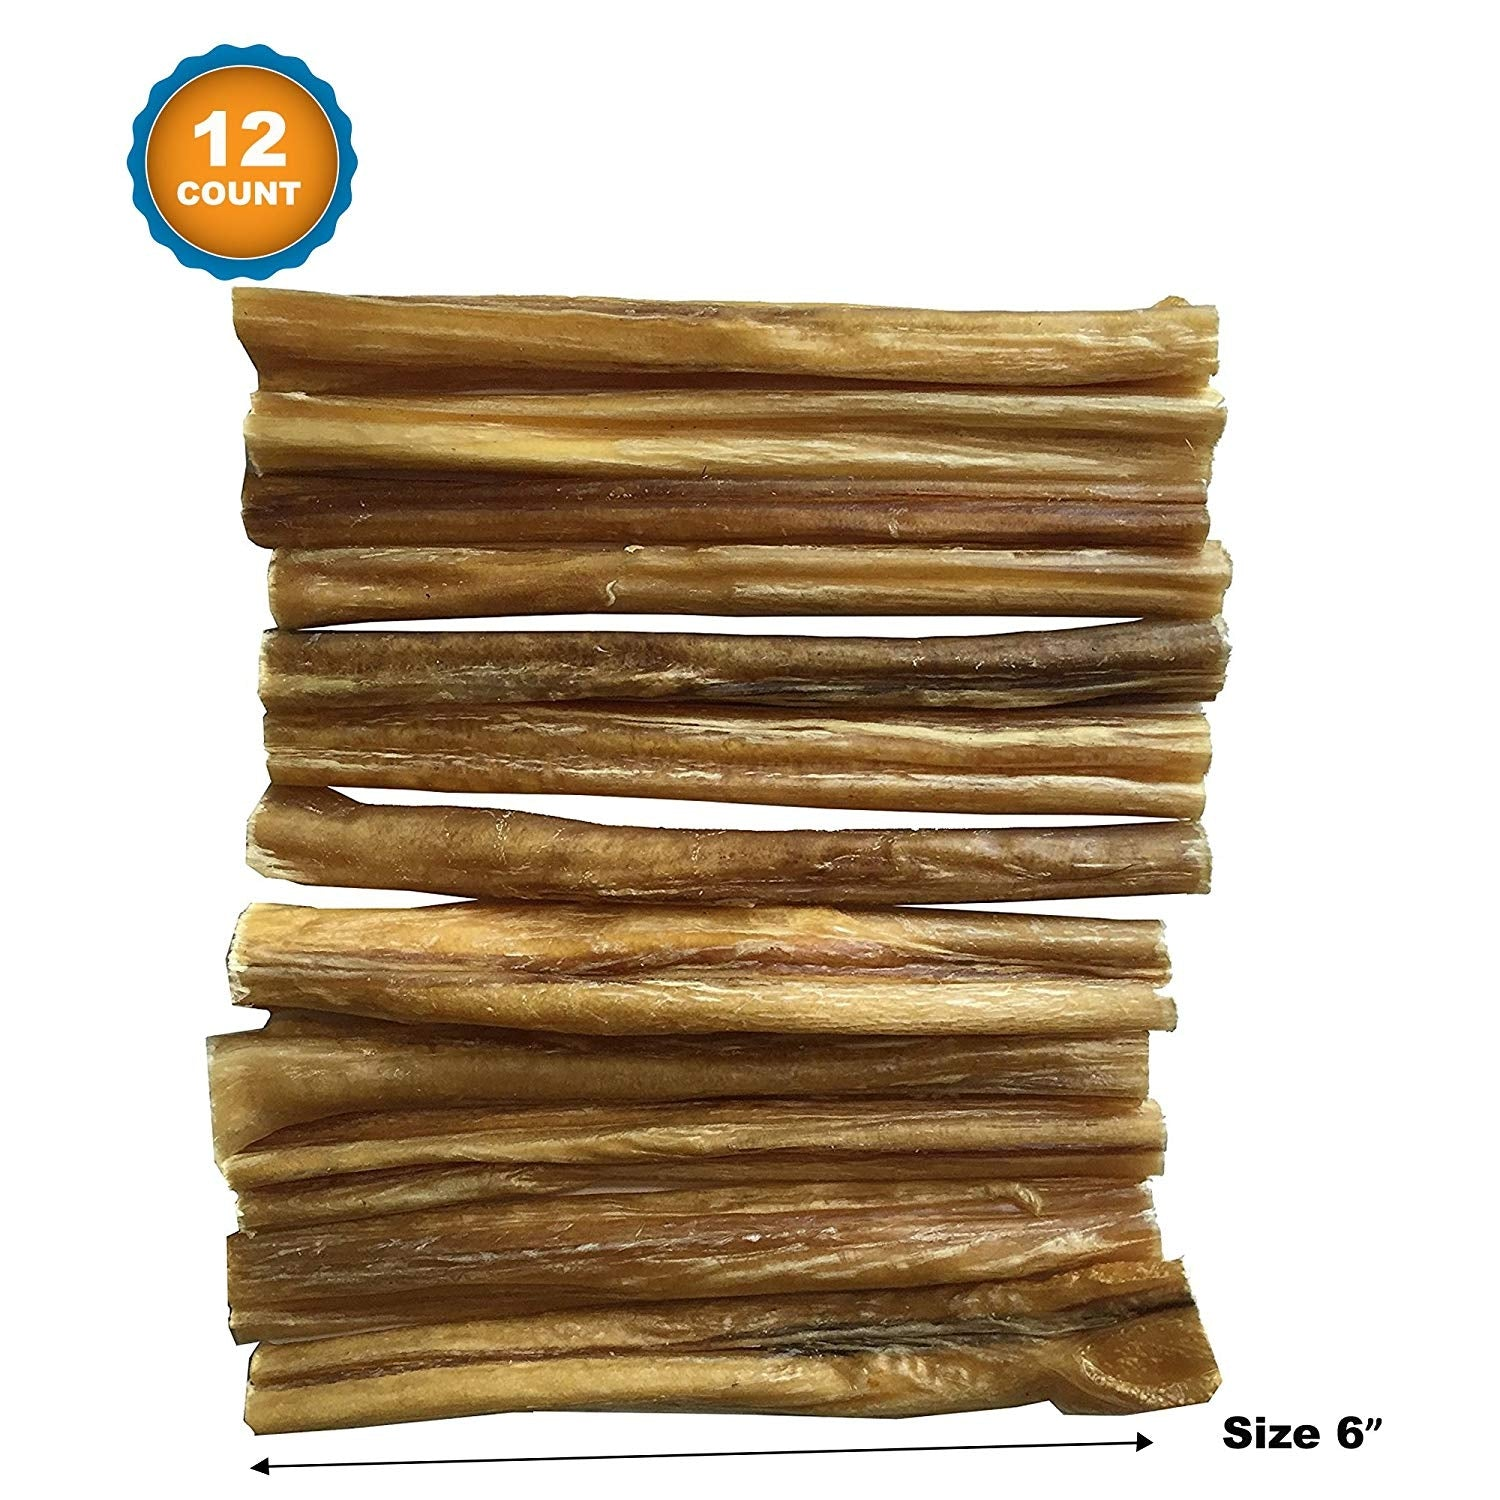 BULLY STICKS | 12 Count | 6 Inches | USDA Approved | 100% Natural Dog Chews |From 123 Treats